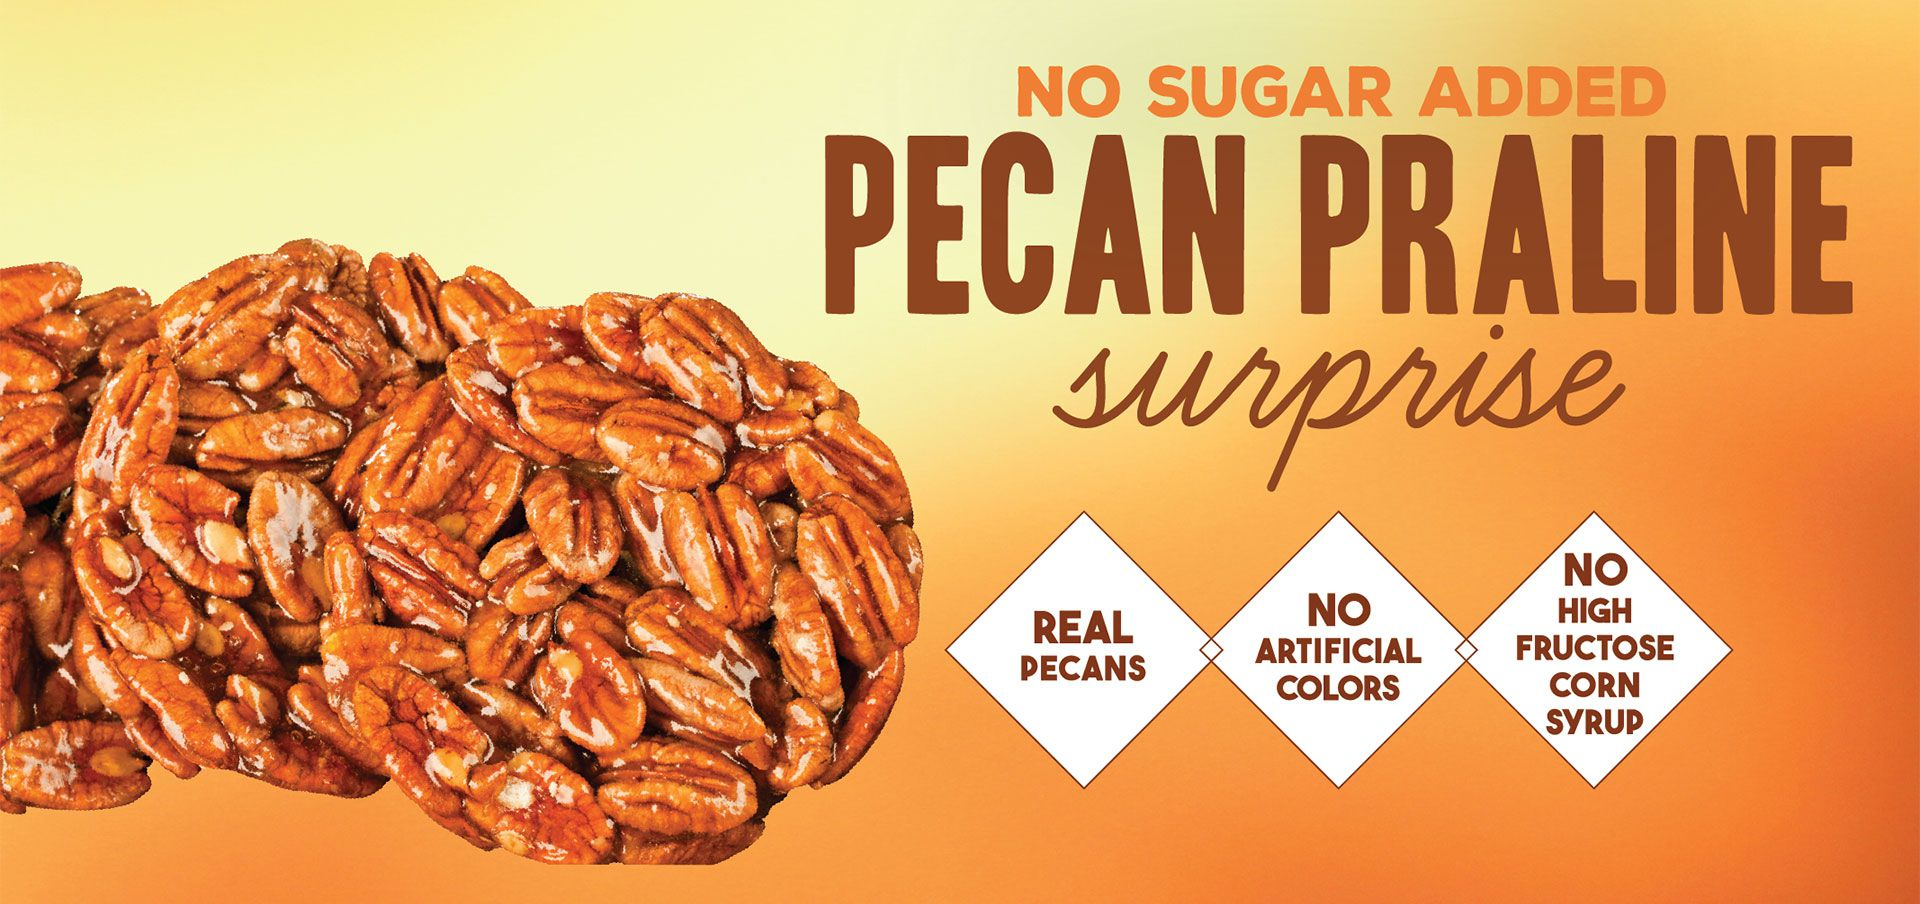 nsa pecan praline surprise label image